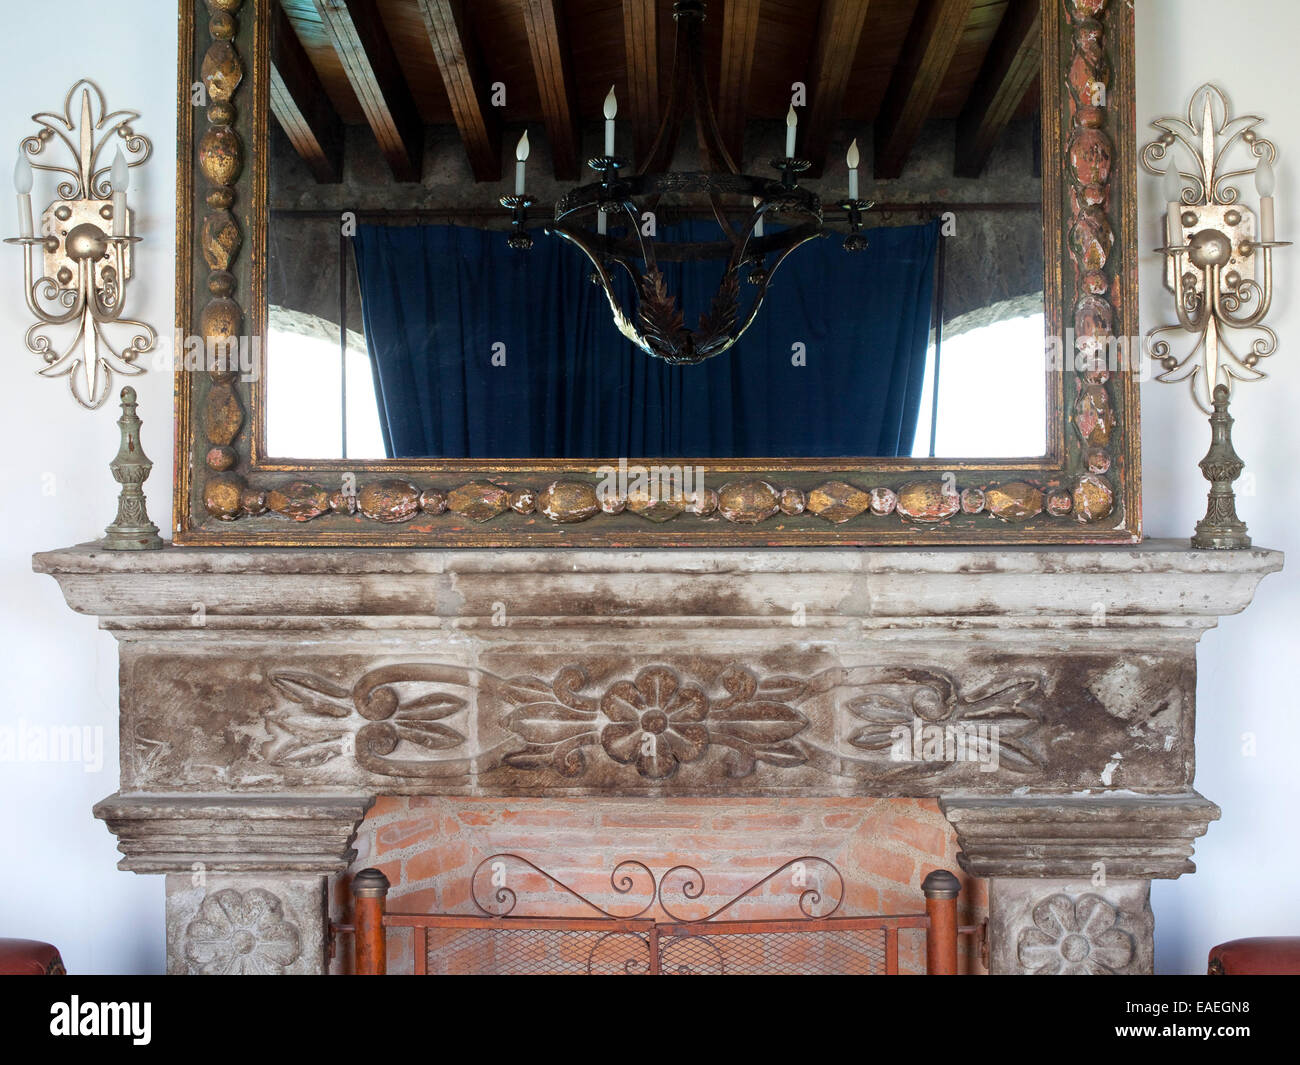 decorative gilded mirror and limestone fireplace with mantle - Stock Image